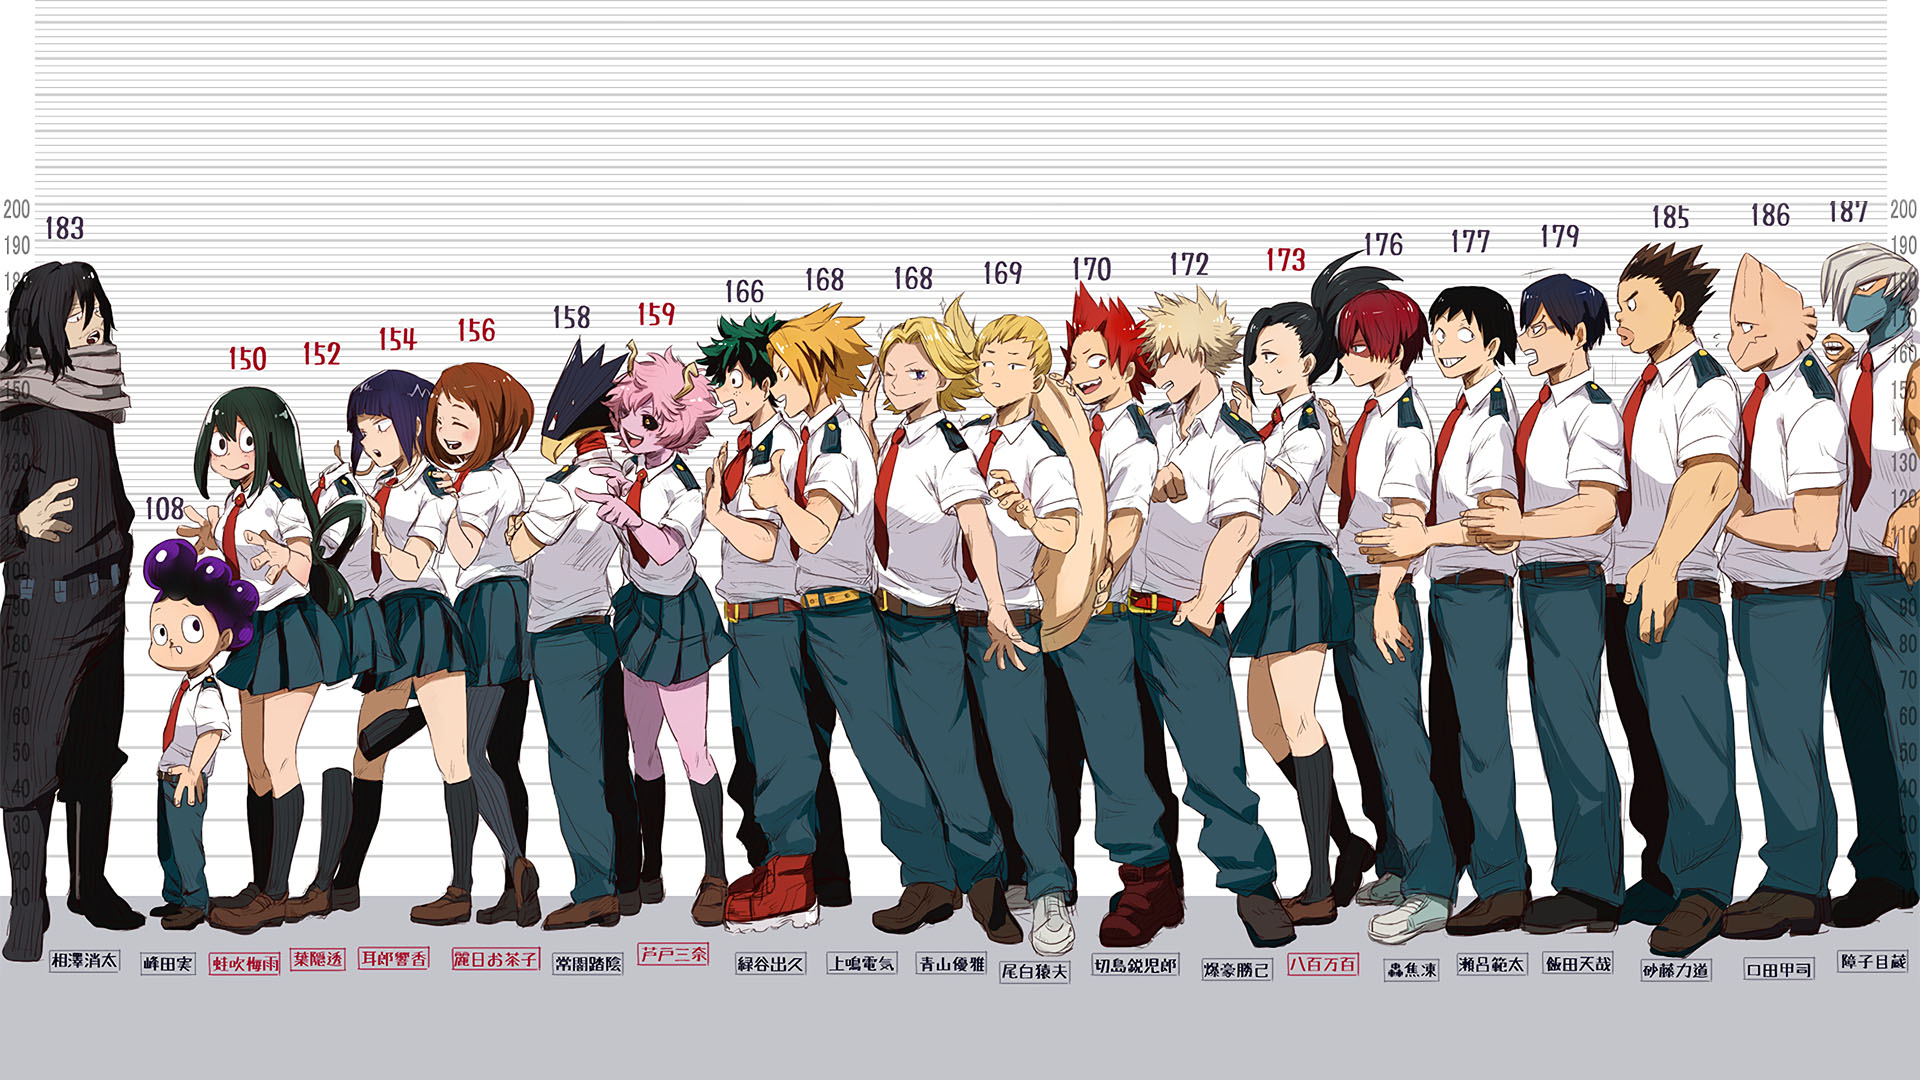 Download Wallpaper From Anime My Hero Academia With My Hero